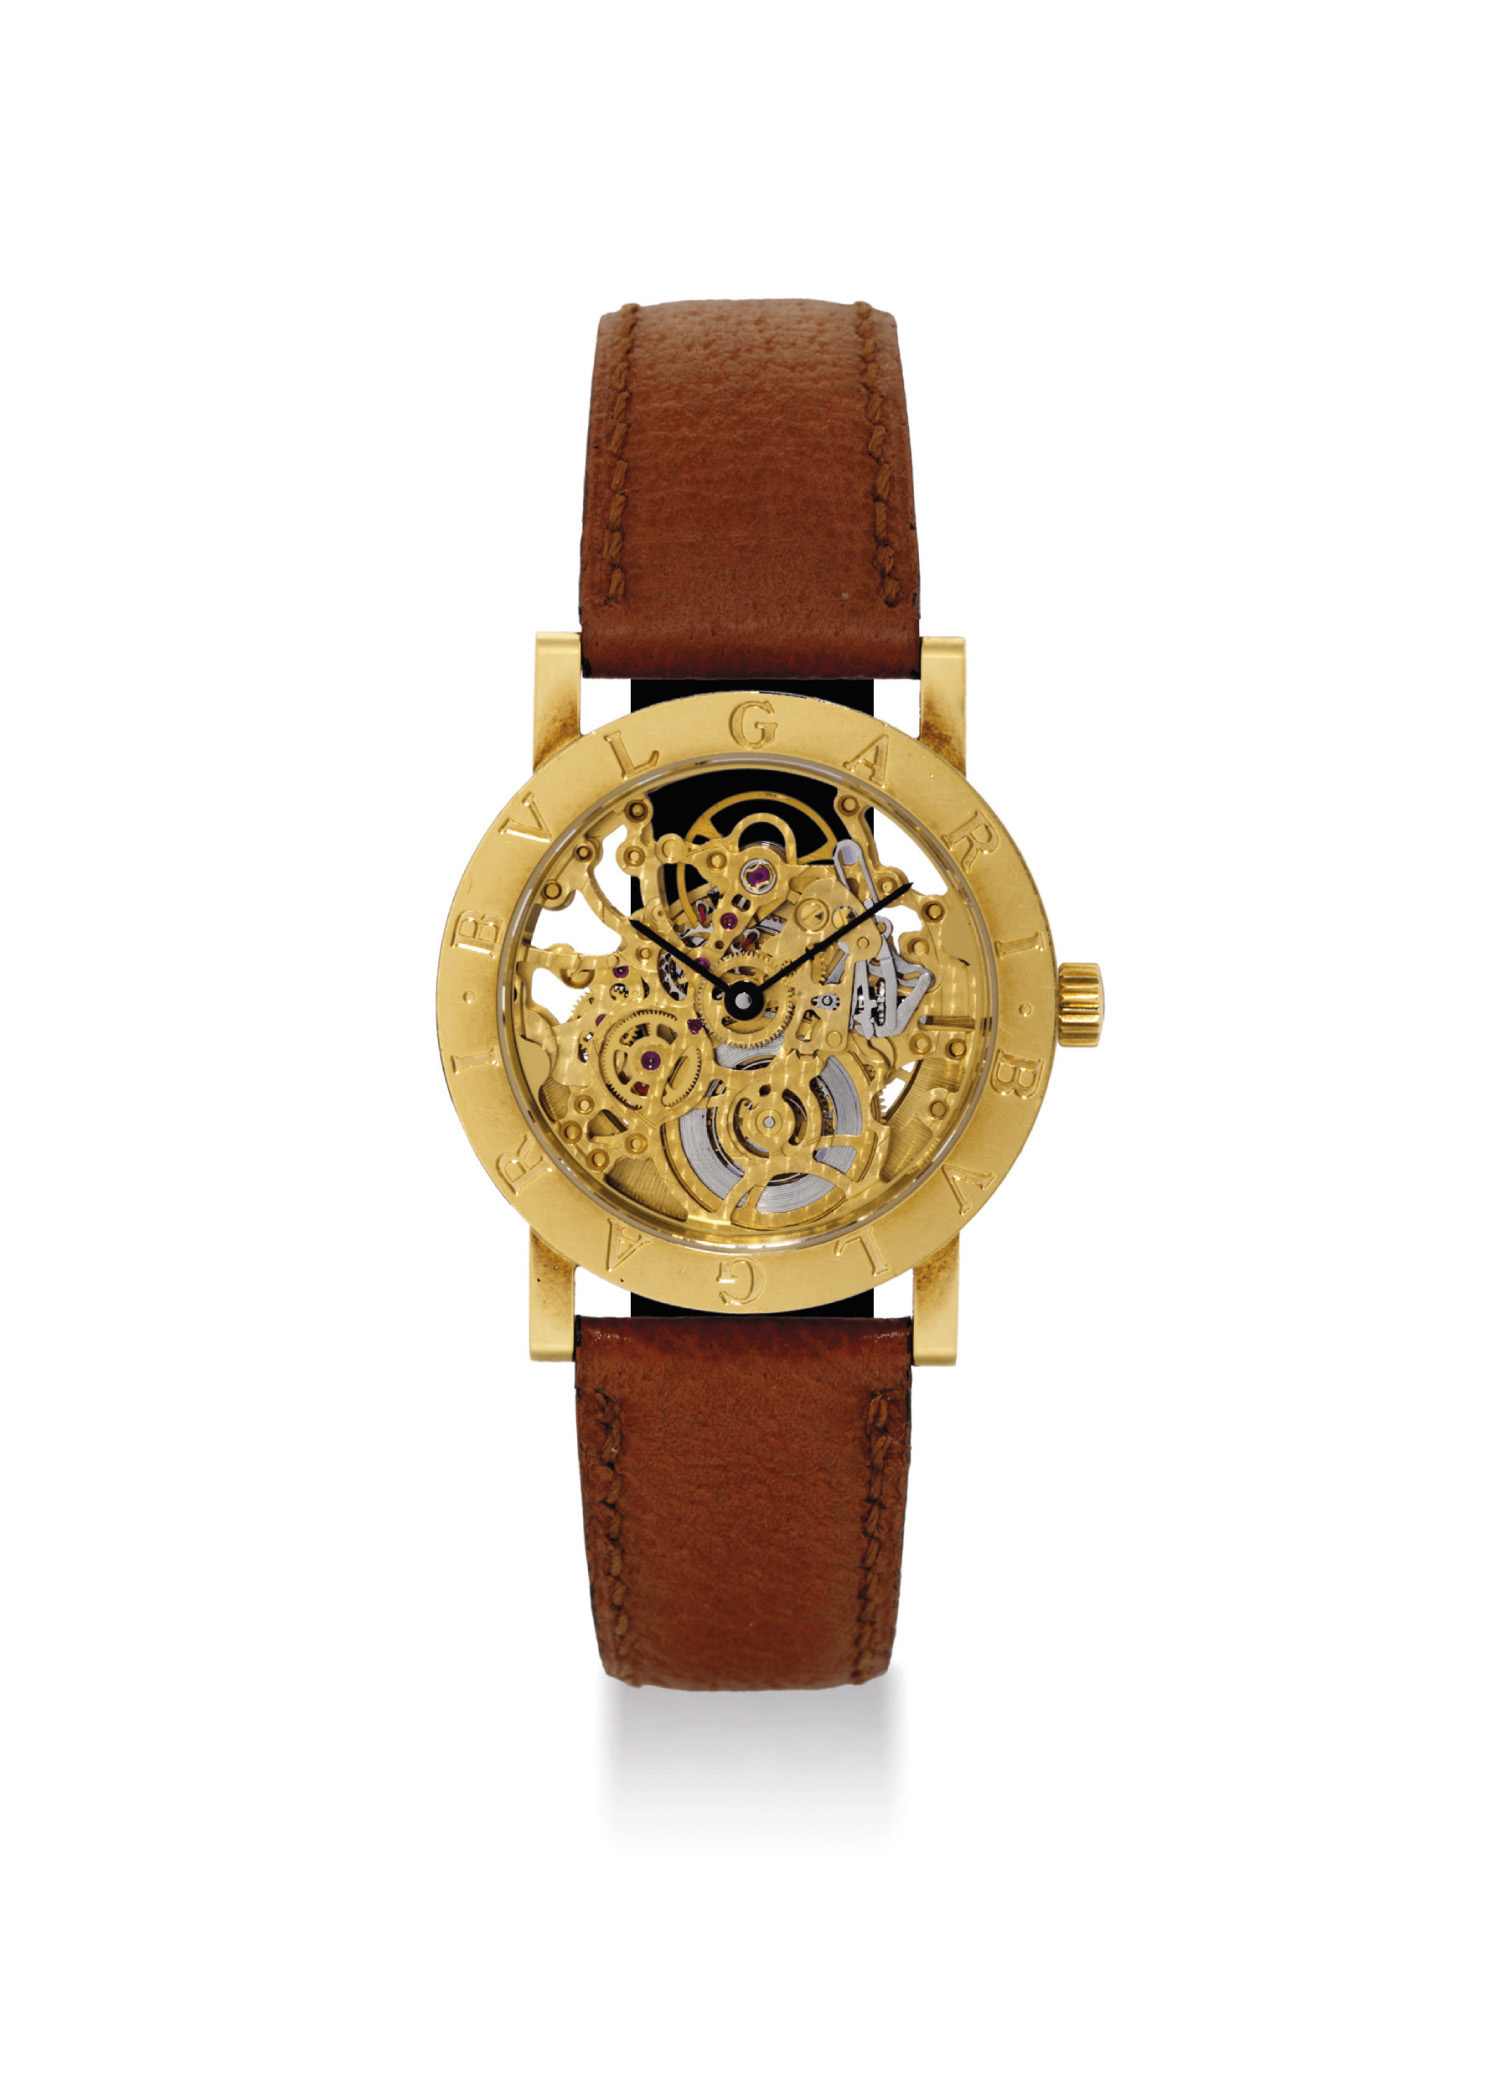 BULGARI. AN 18K GOLD SKELETONI